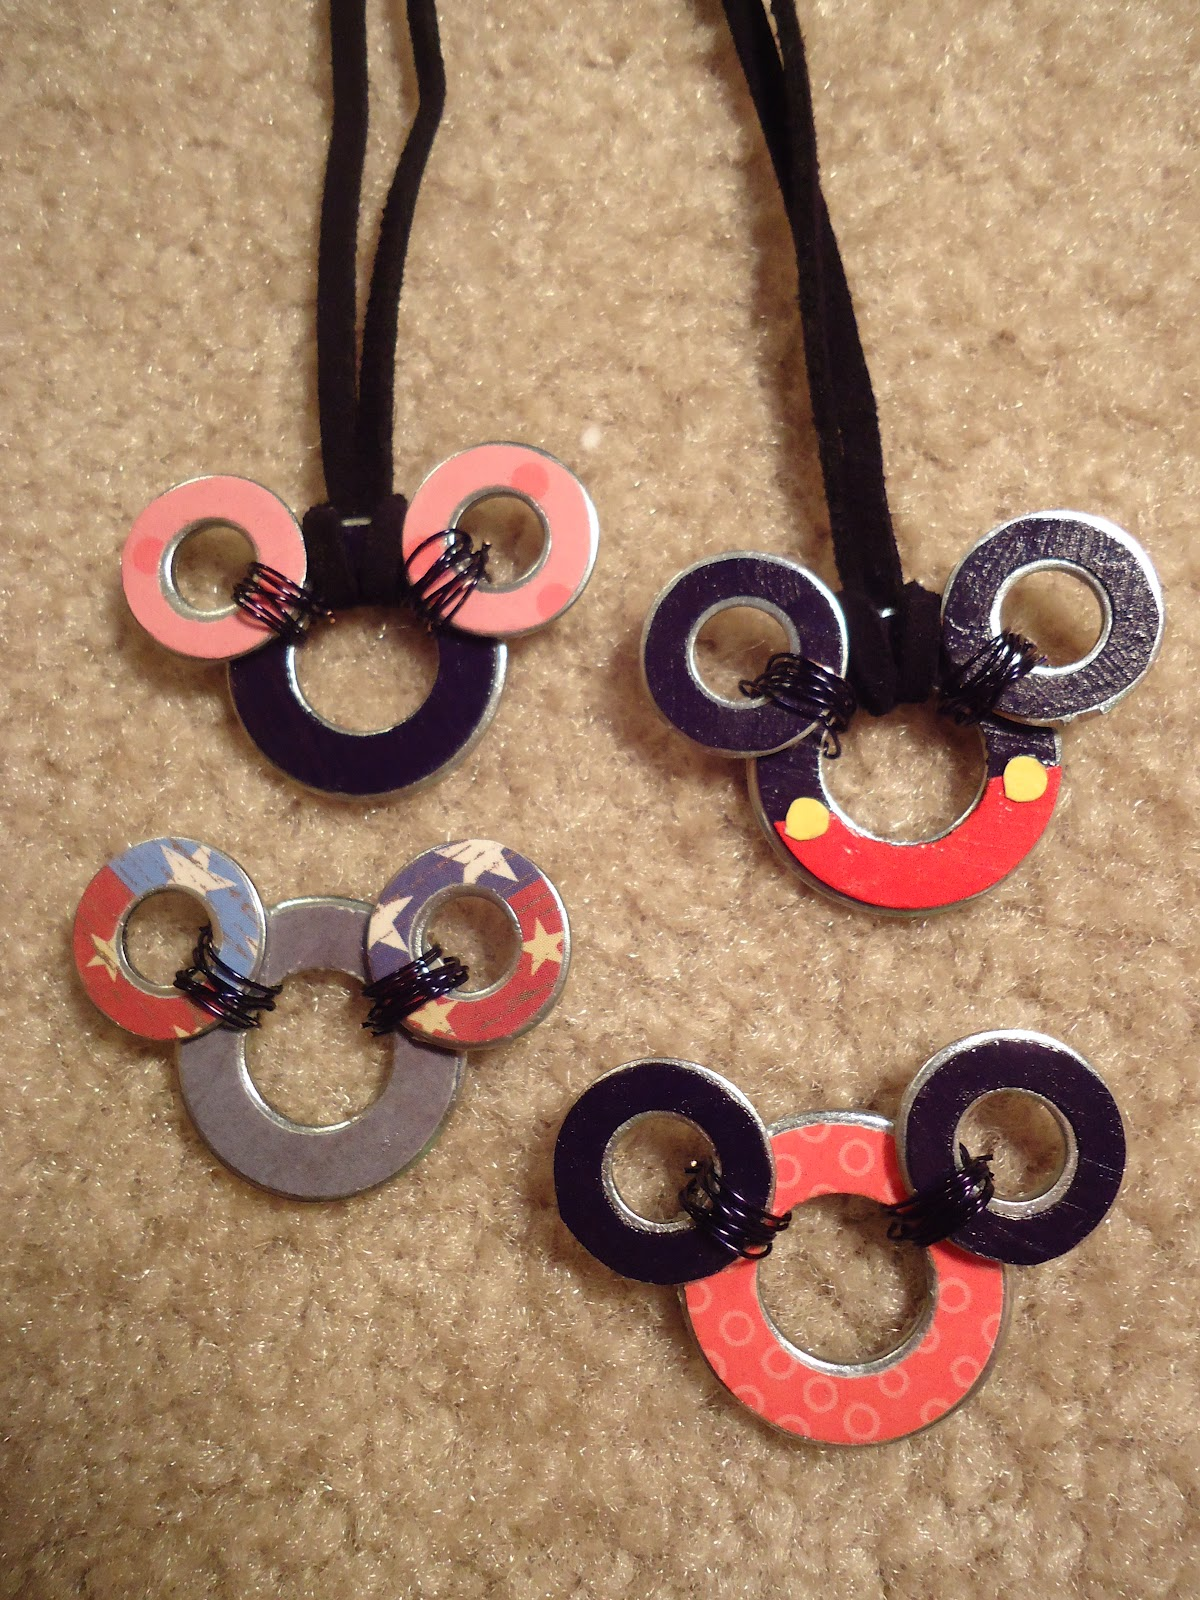 sewing necklaces guardie fun for friday necklace com washer colorguardeducator blog